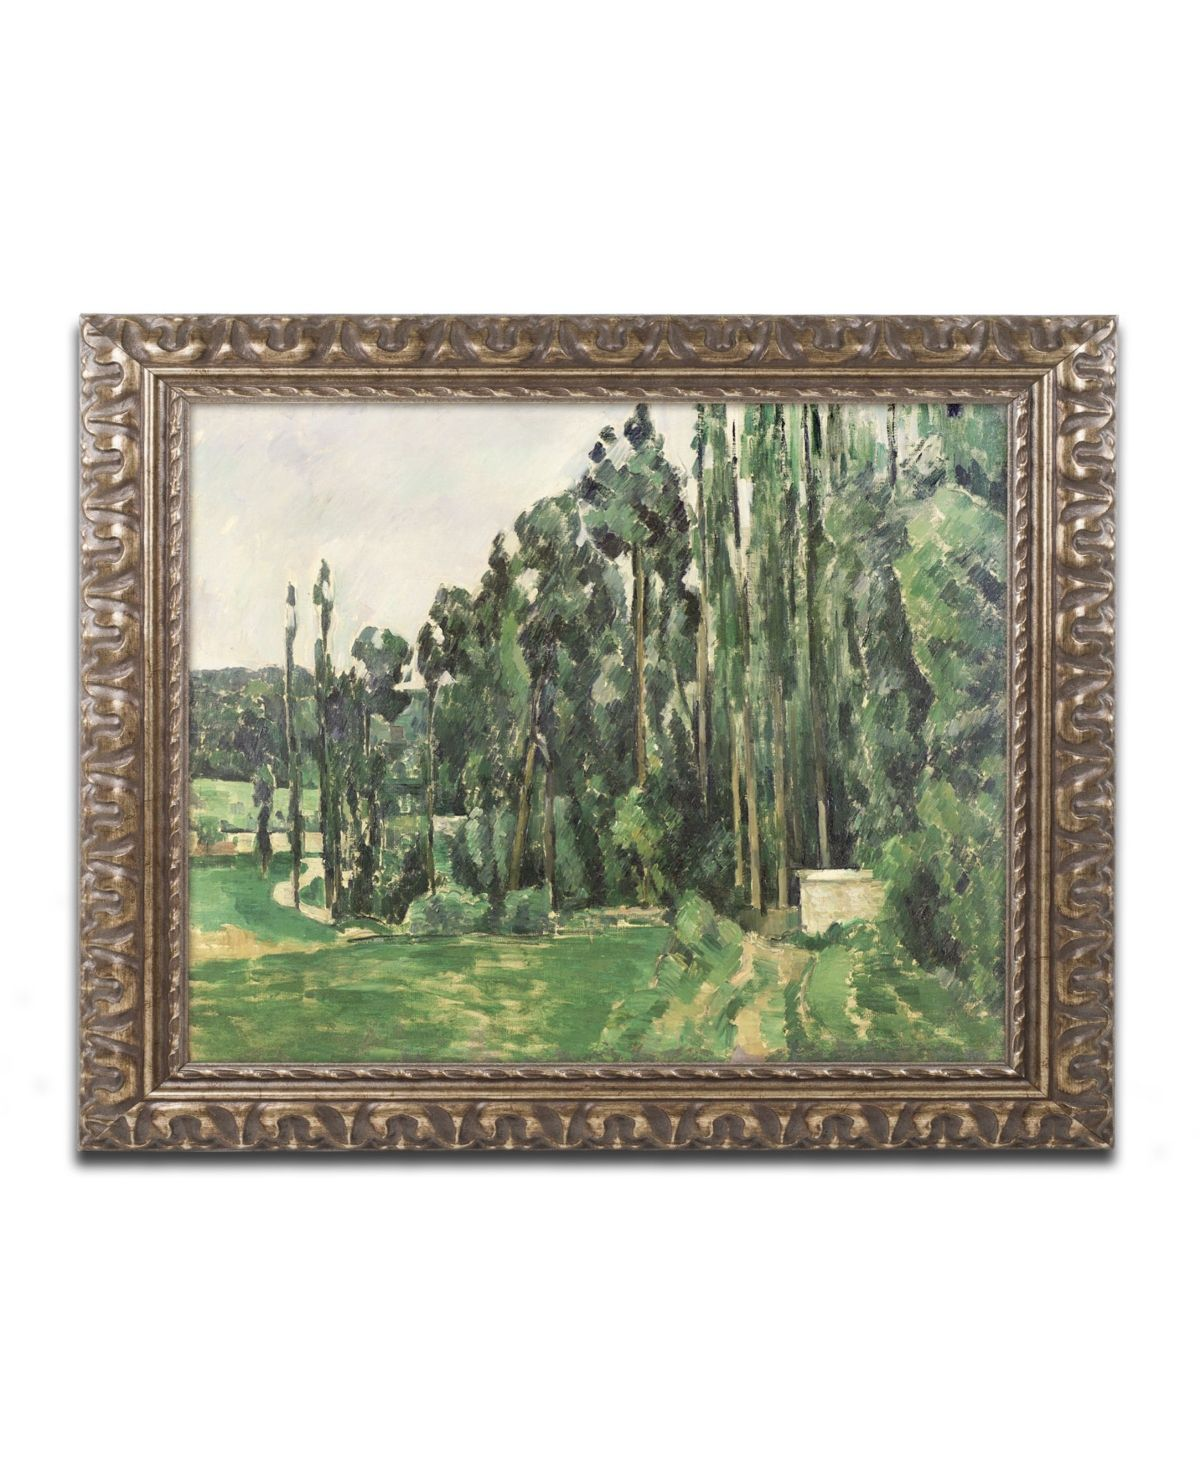 Paul Cezanne The Poplars 1879 Ornate Framed Art 11 X 14 Multi Ornate Frame Trademark Art Painting Frames